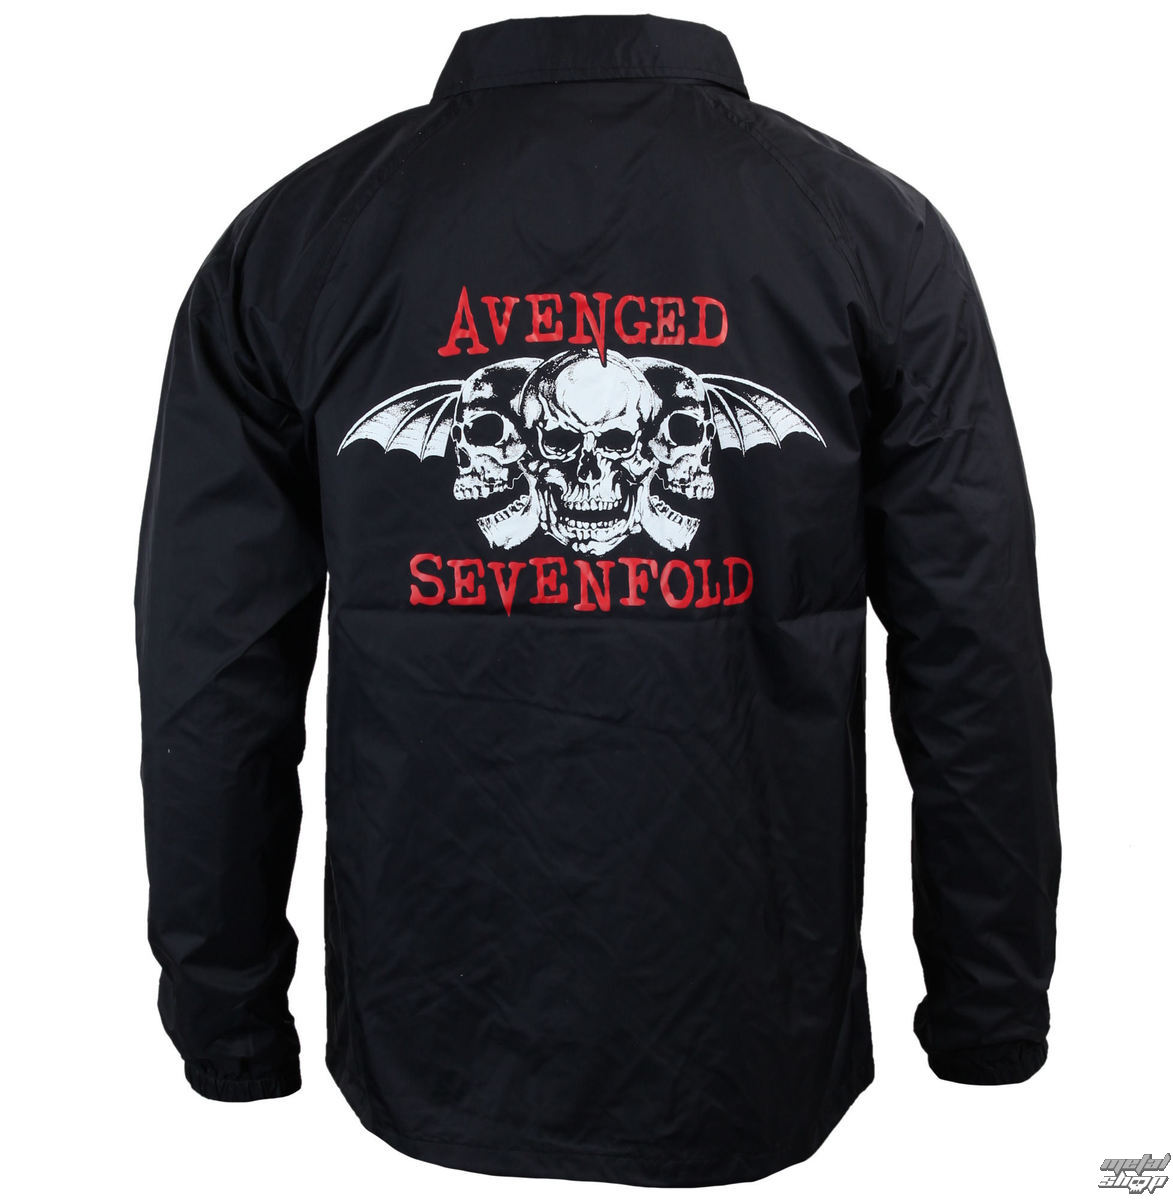 veste printemps automne pour hommes avenged sevenfold deadhead bravado 17952135. Black Bedroom Furniture Sets. Home Design Ideas